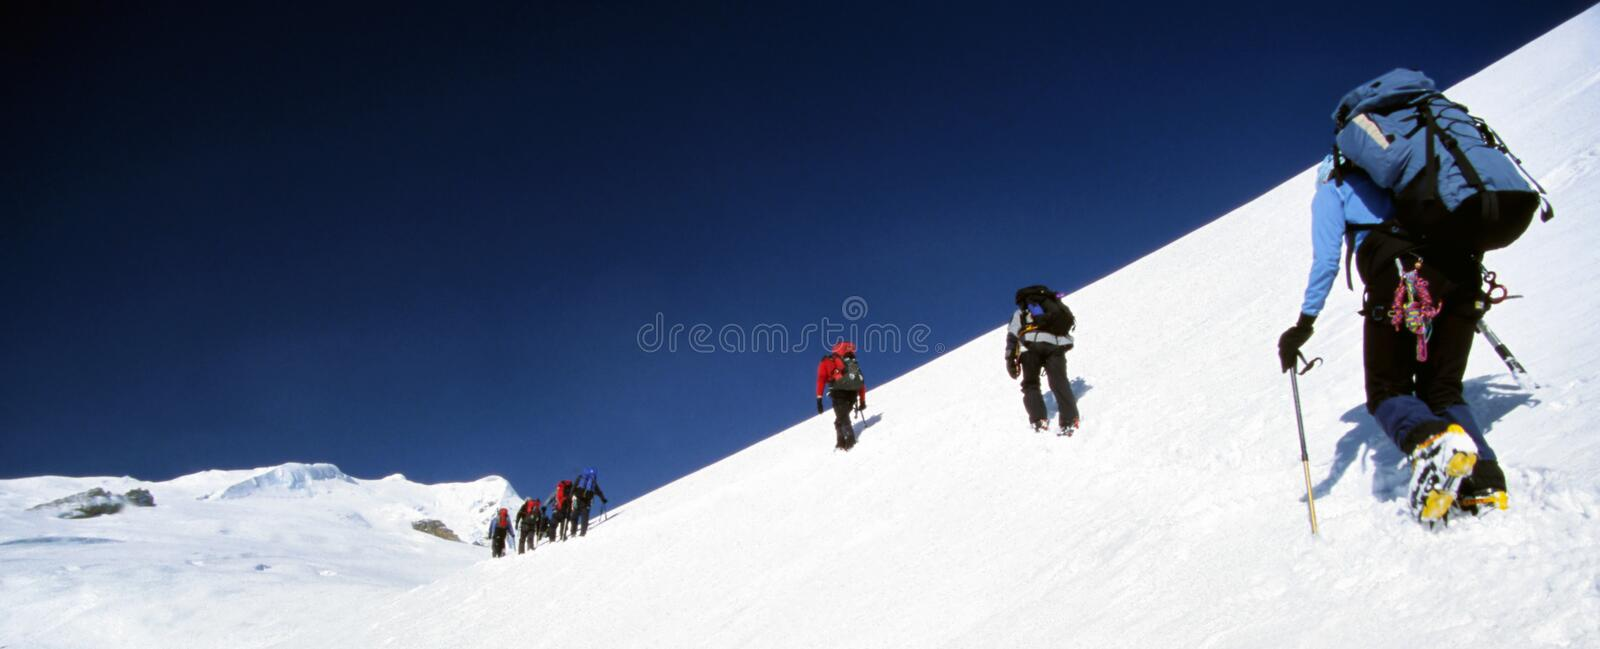 Climbers. Making a high glacial traverse towards their summit goal stock photo